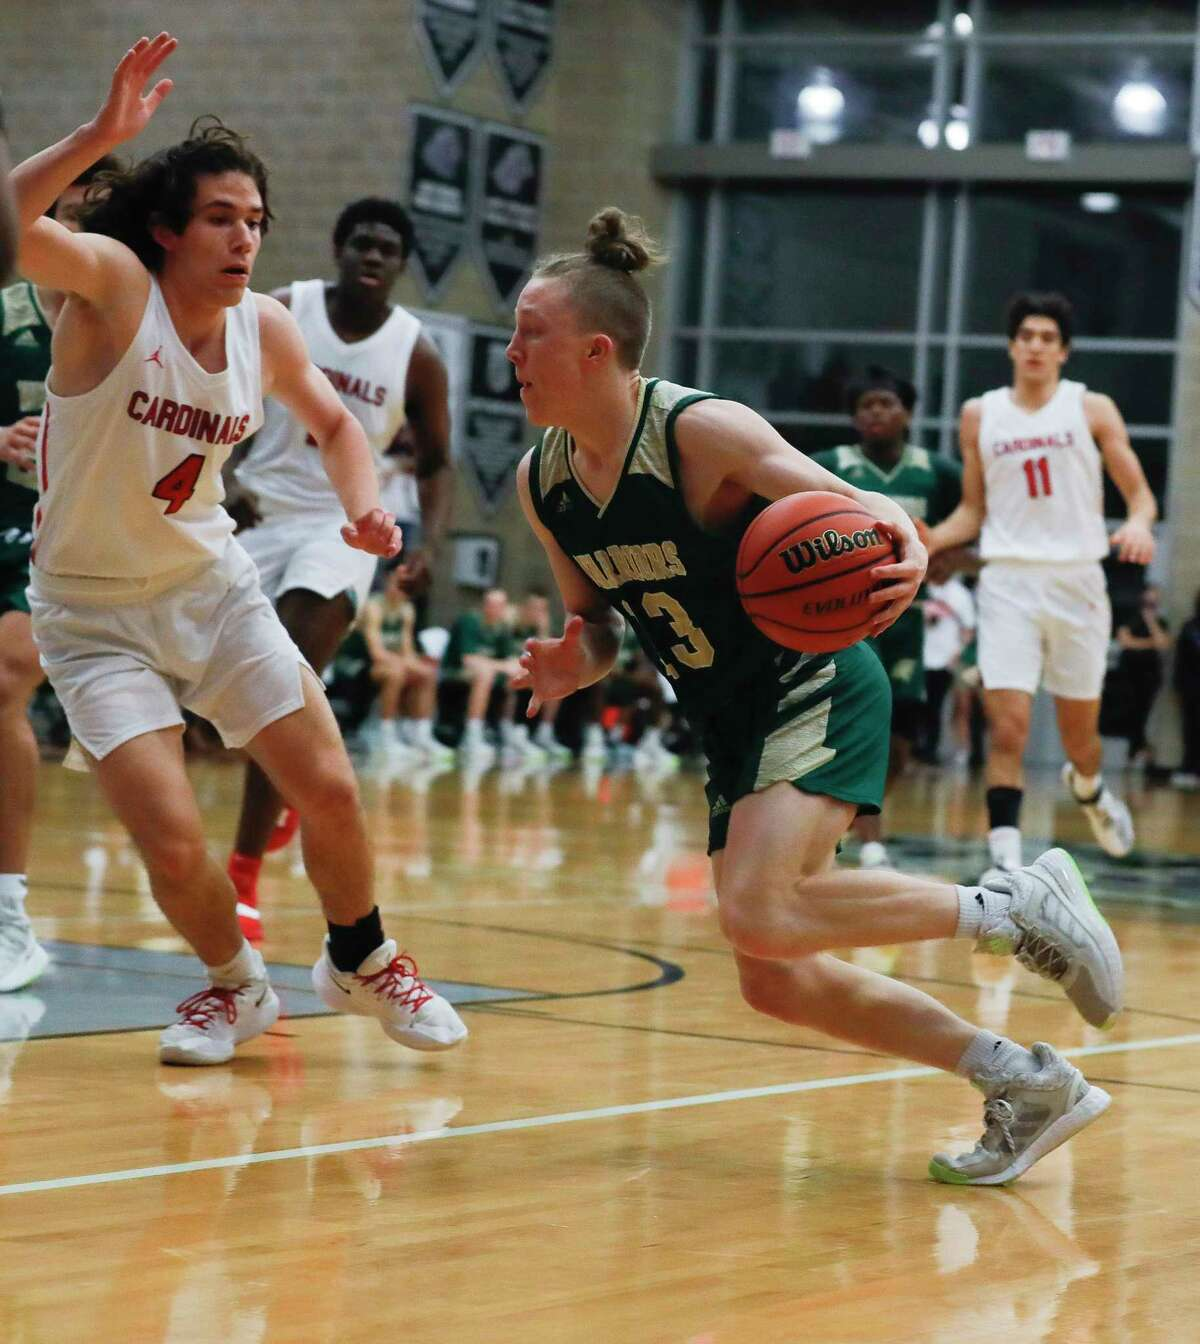 The Woodlands Christian Academy's Austin Benigni (13) drives to the basket against Fort Worth Christian's Nathan Bledsoe (4) during the first quarter of a TAPPS Class 5A state championship game at College Station High School, Friday, March 12, 2021, in College Station.